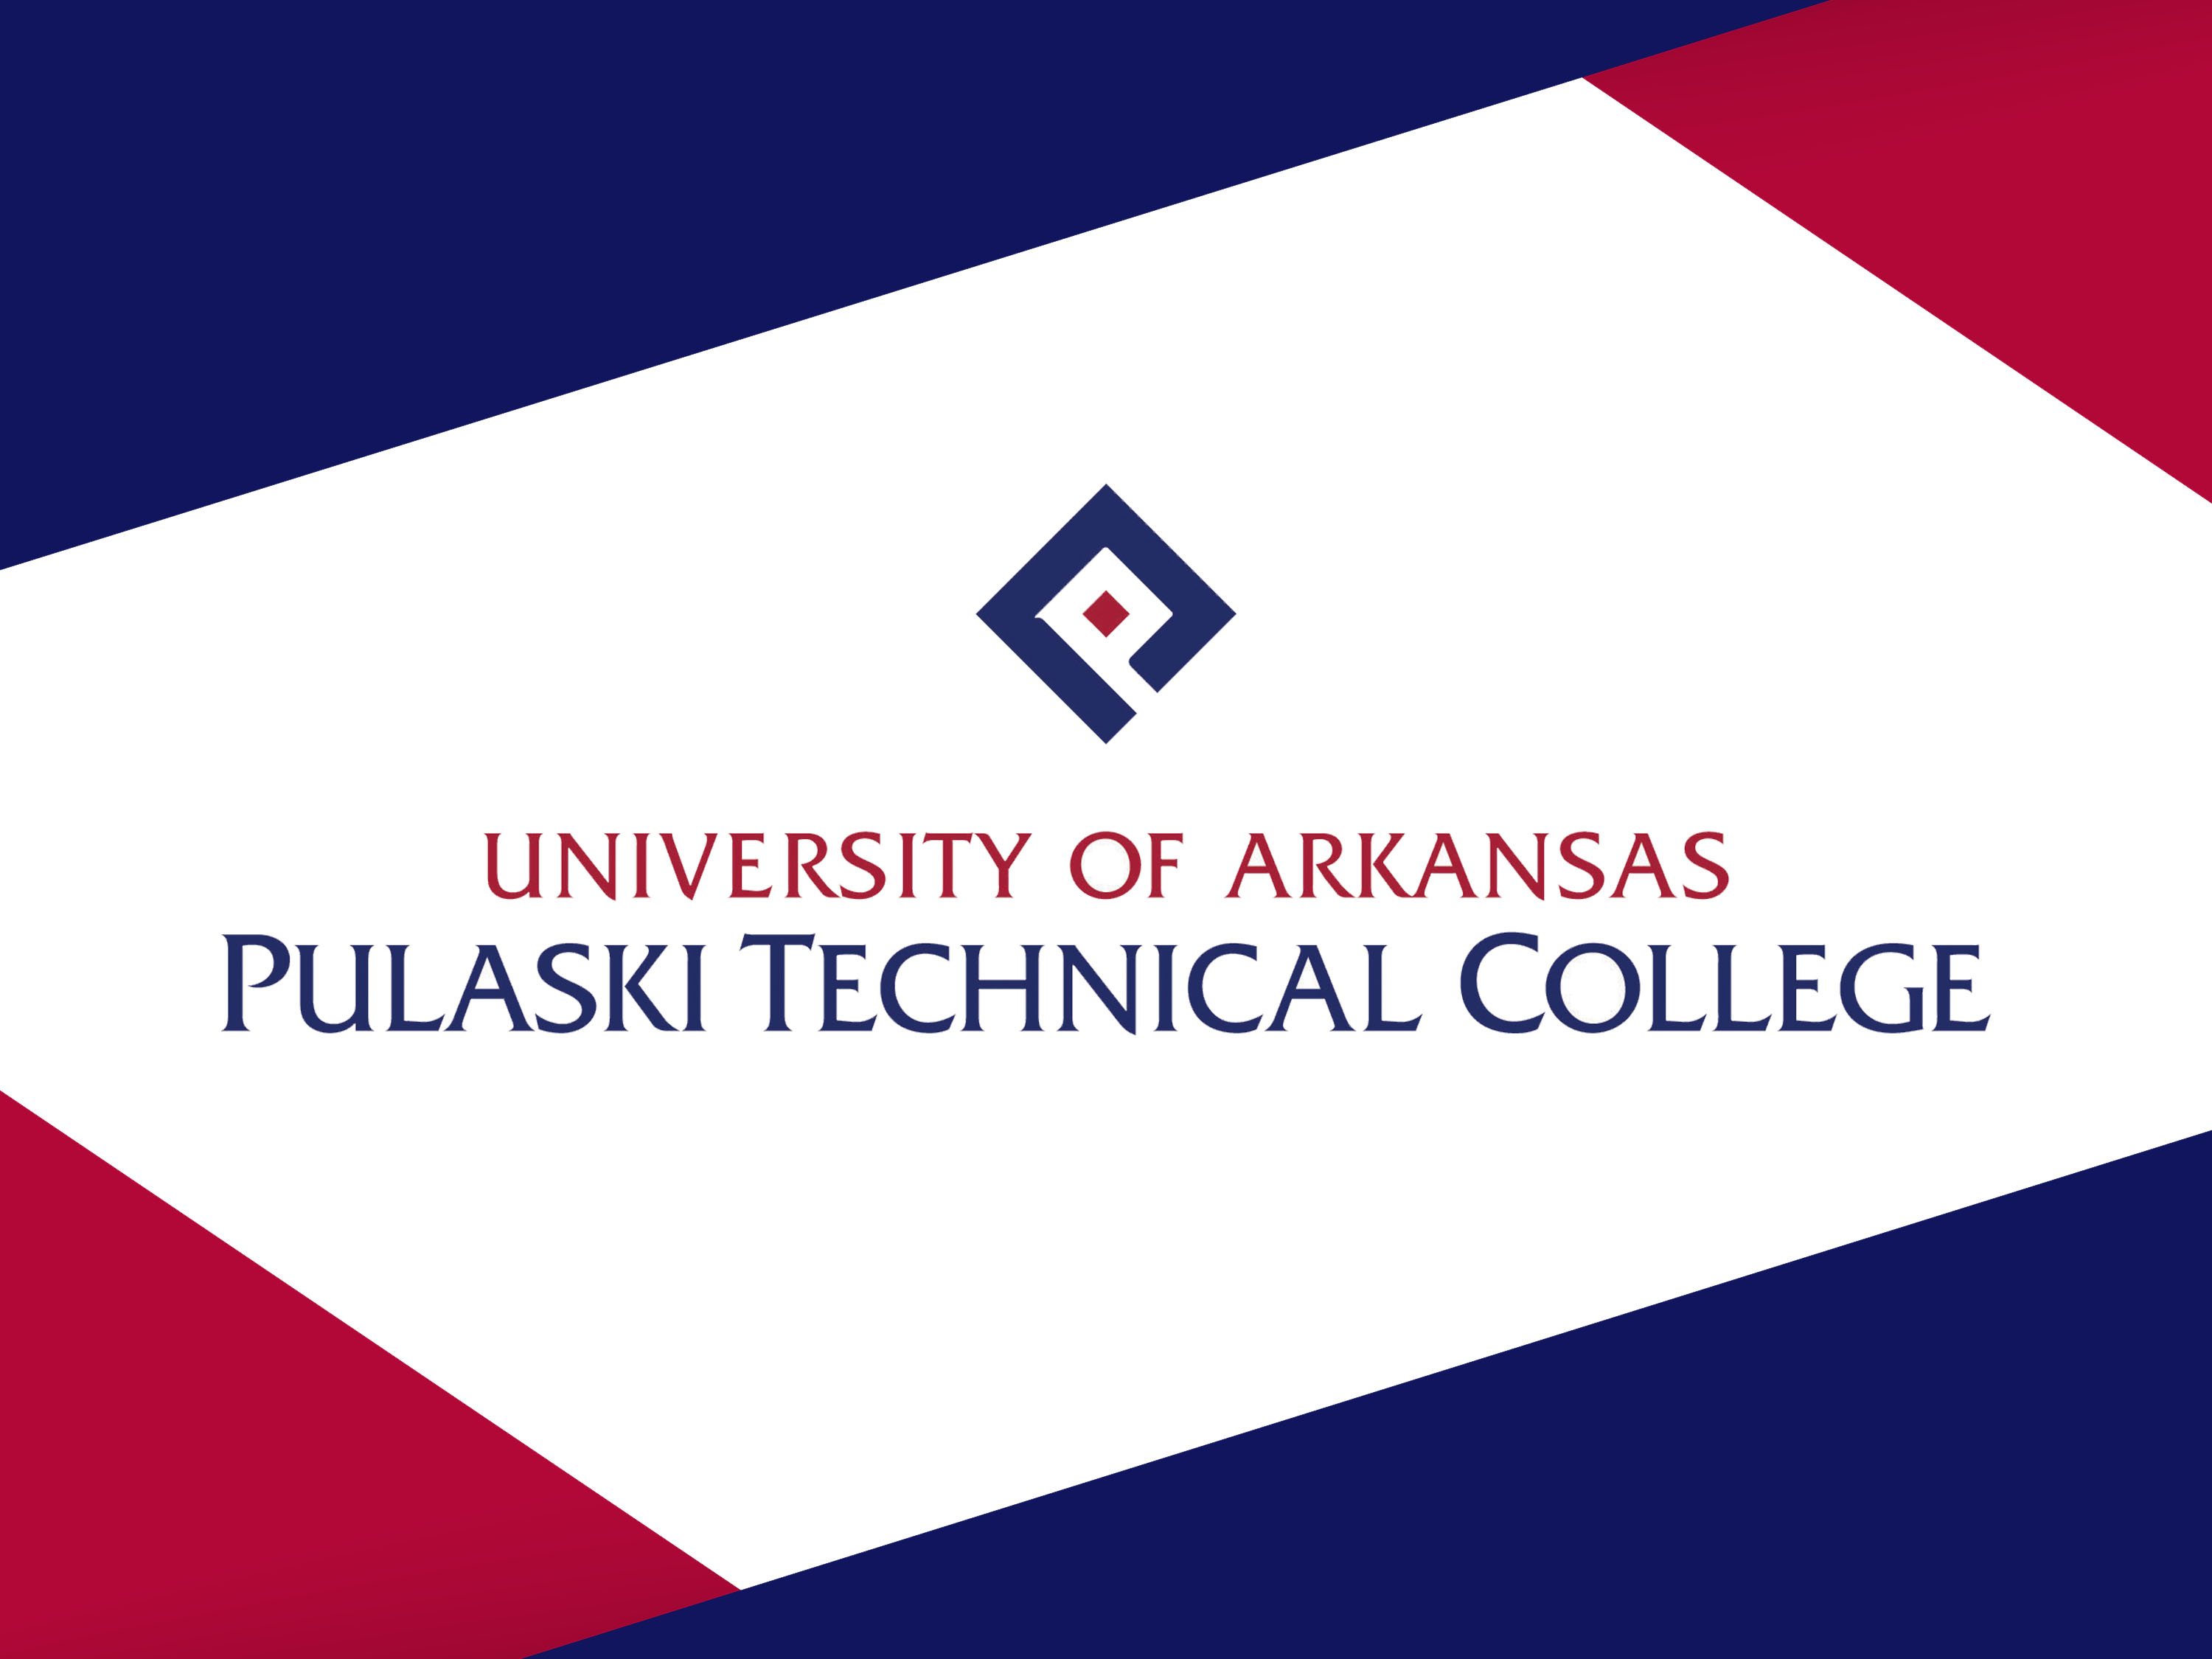 University of Arkansas – Pulaski Technical College